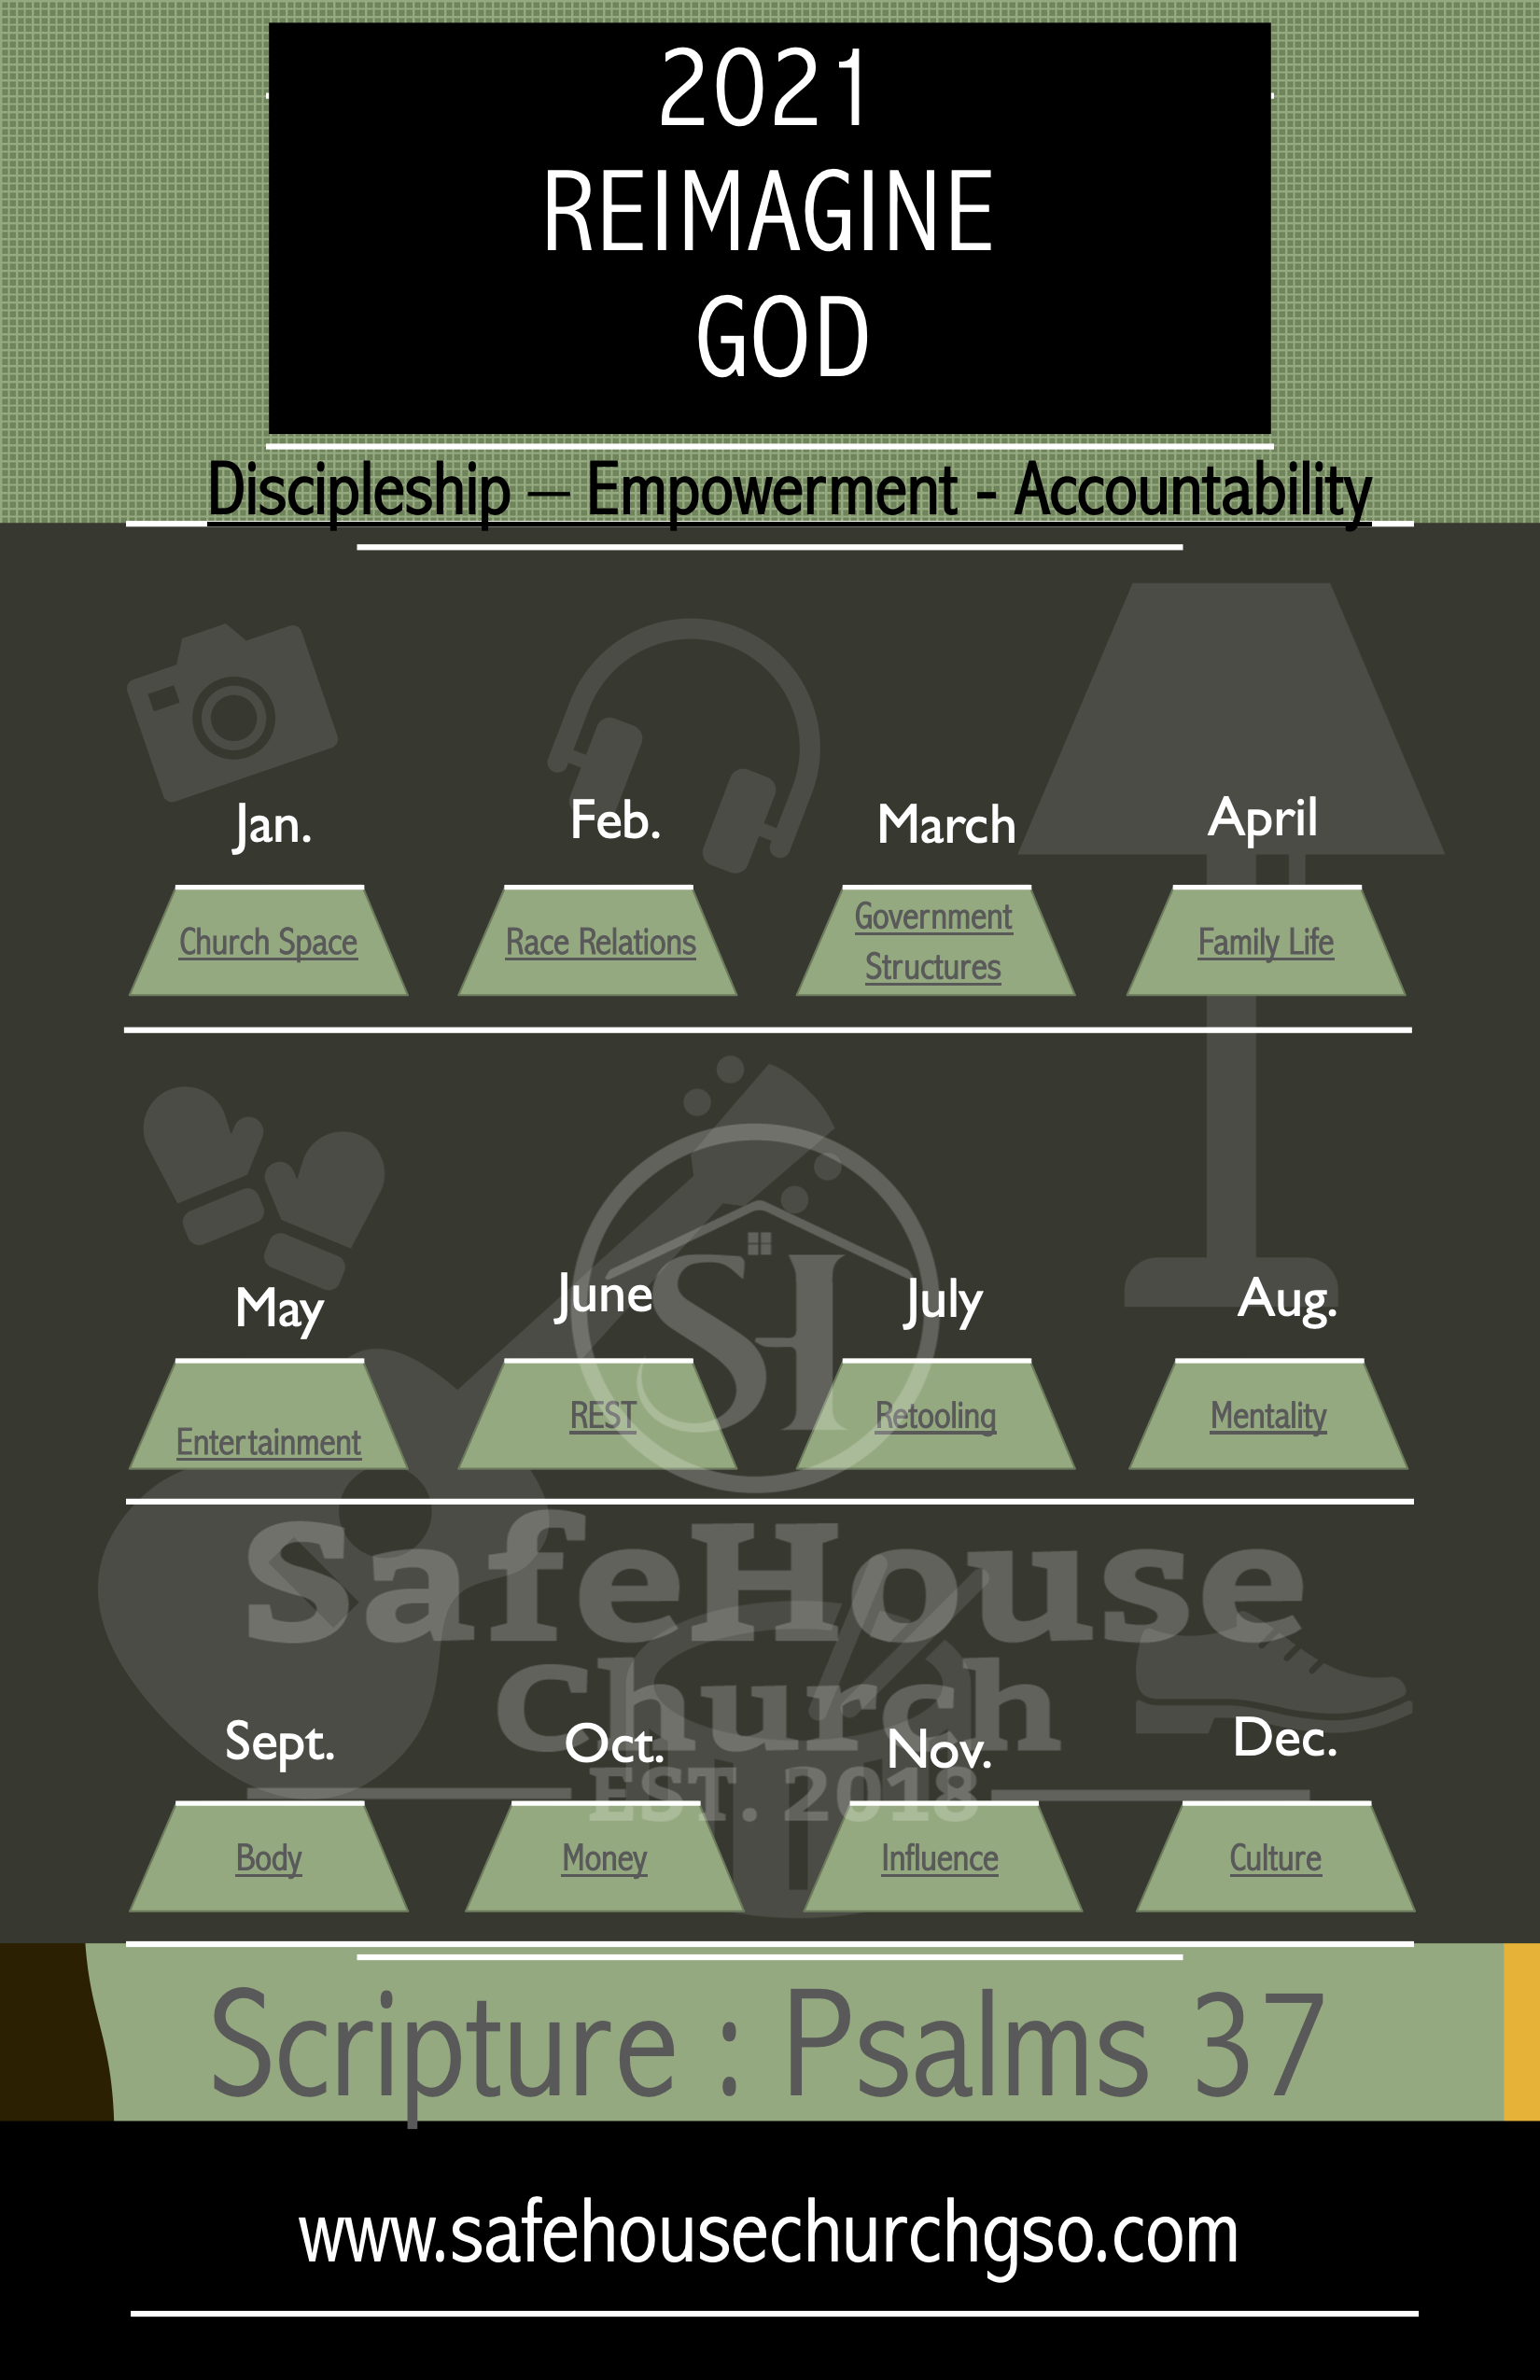 The SafeHouse Church